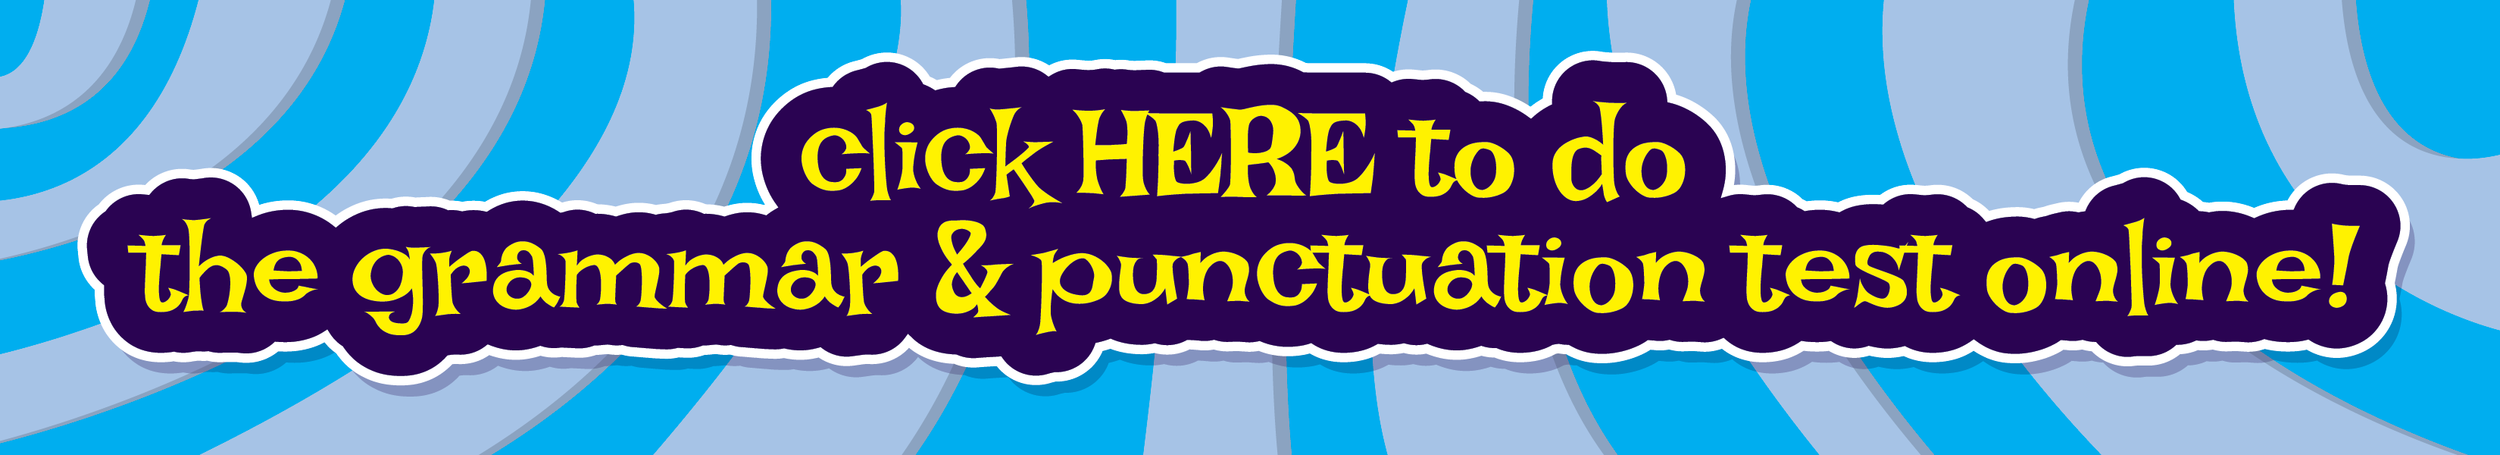 STP Books Click Through to Free Online Interactive KS2 English 10-Minute Grammar & Punctuation Test